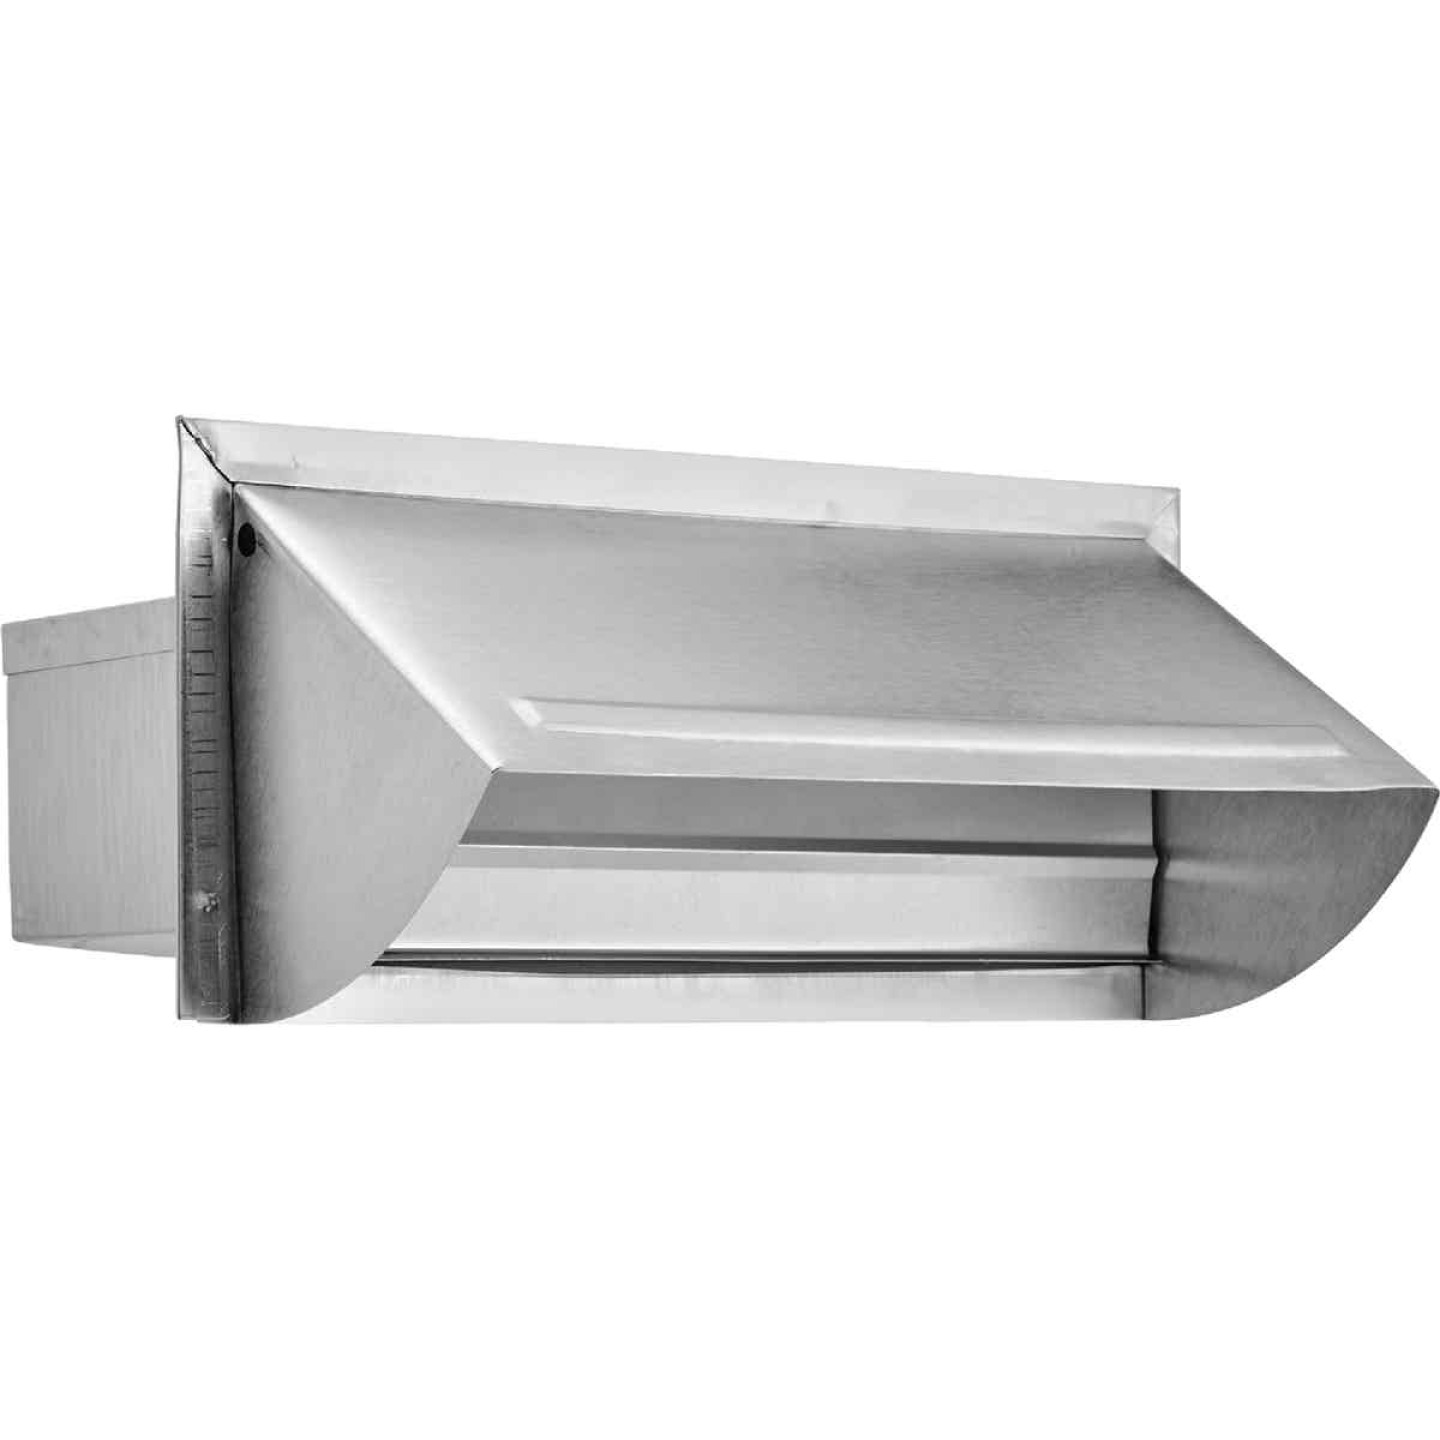 Lambro 3-1/4 In. x 10 In. Mill Finish Aluminum Kitchen Wall Vent Cap Image 1